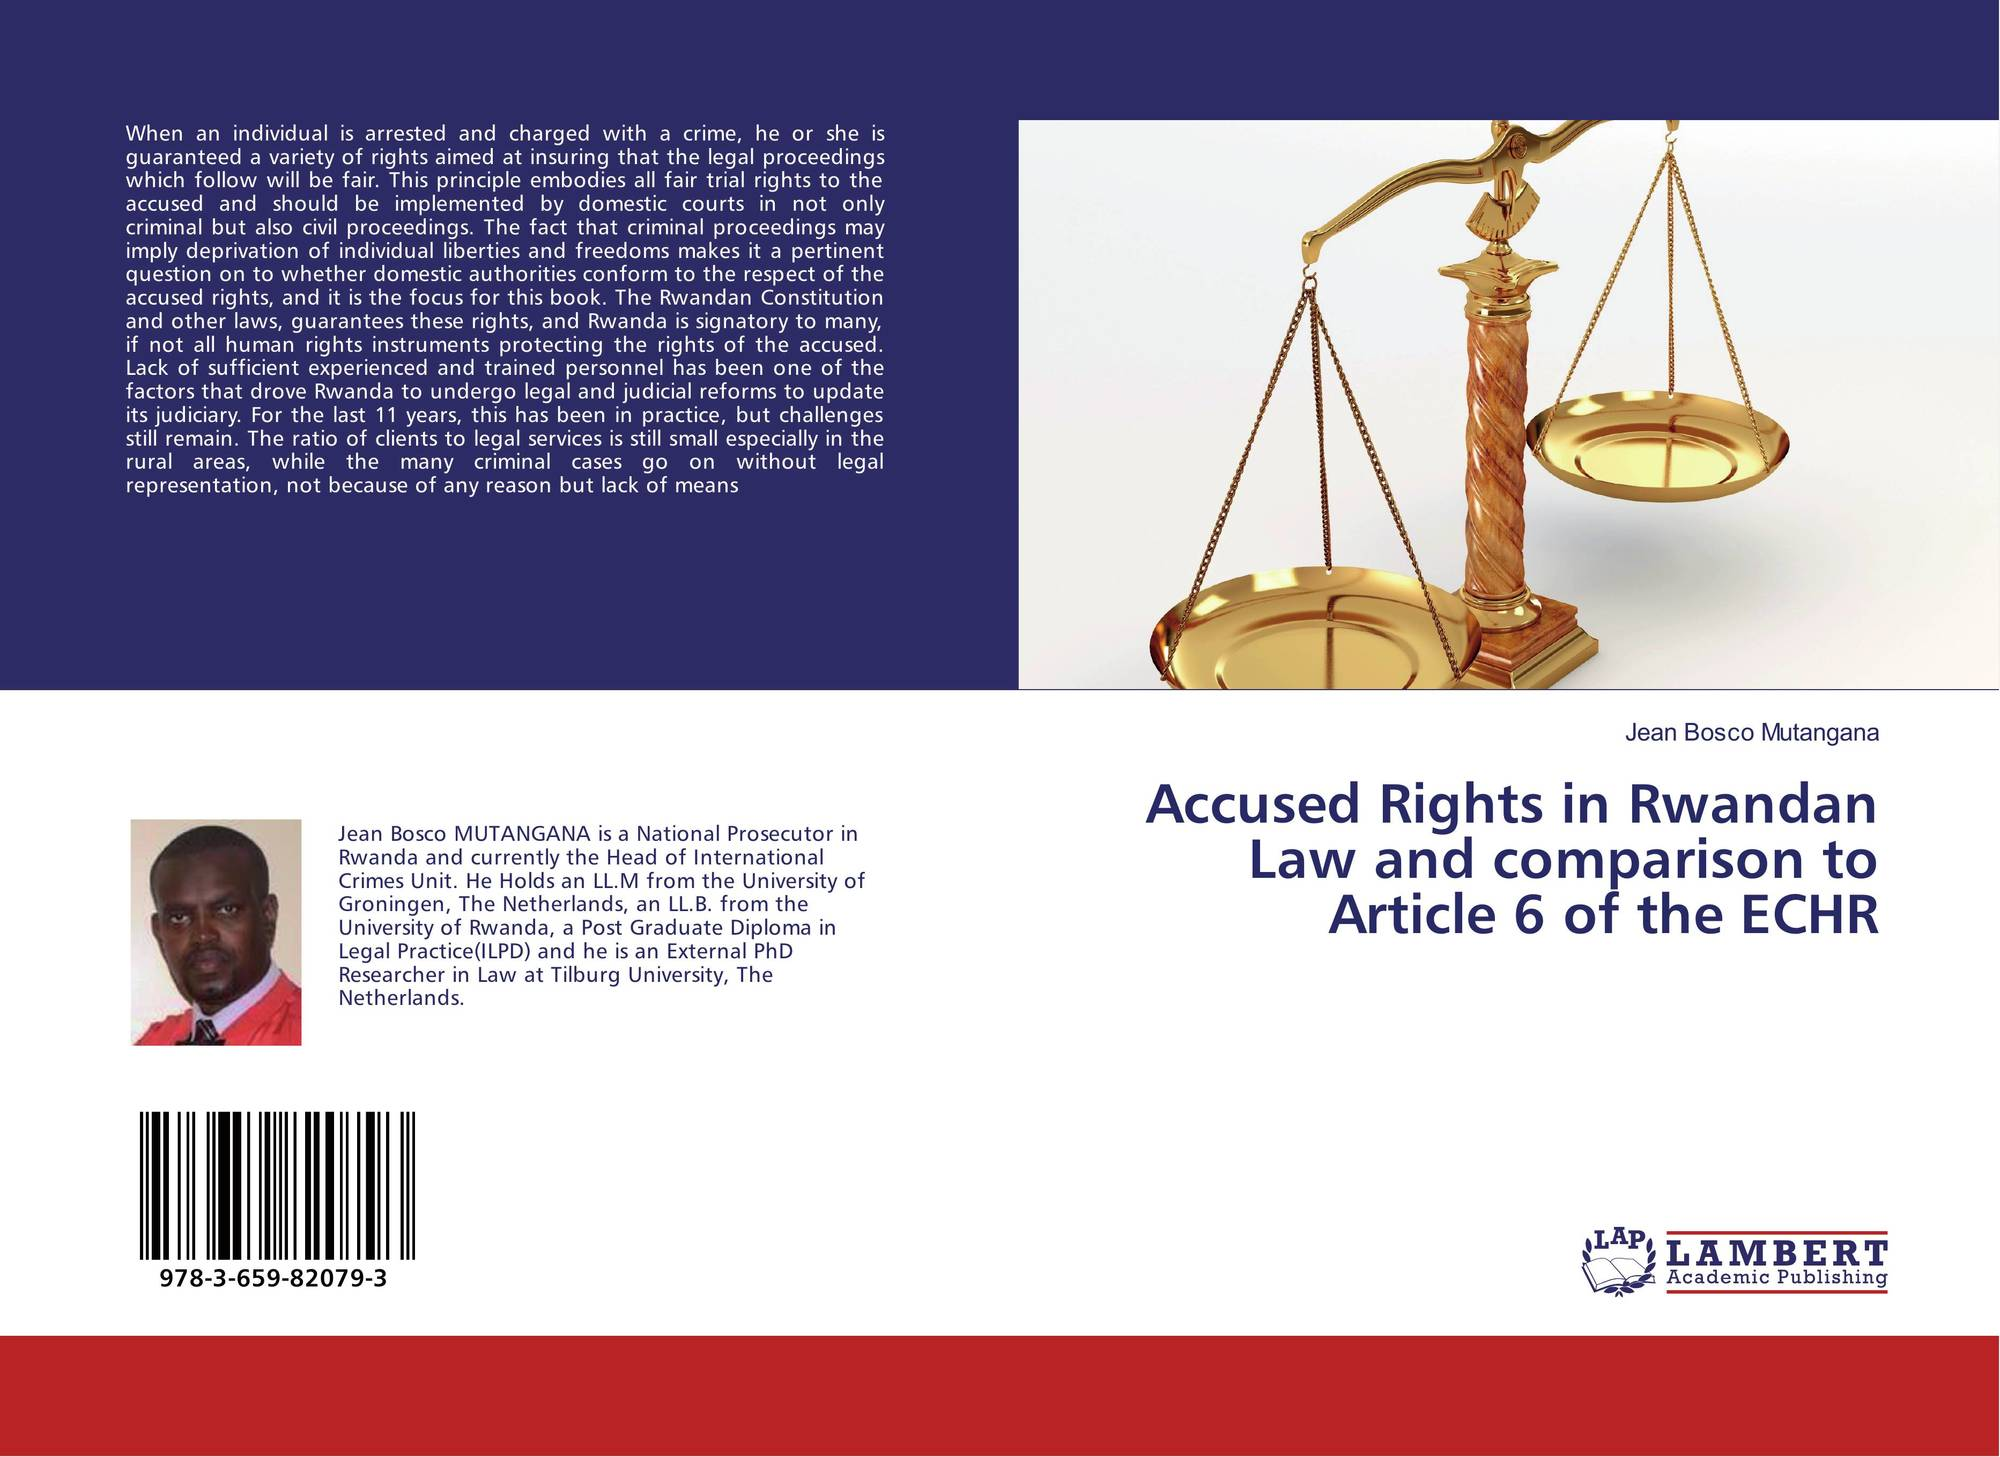 Accused Rights in Rwandan Law and comparison to Article 6 of